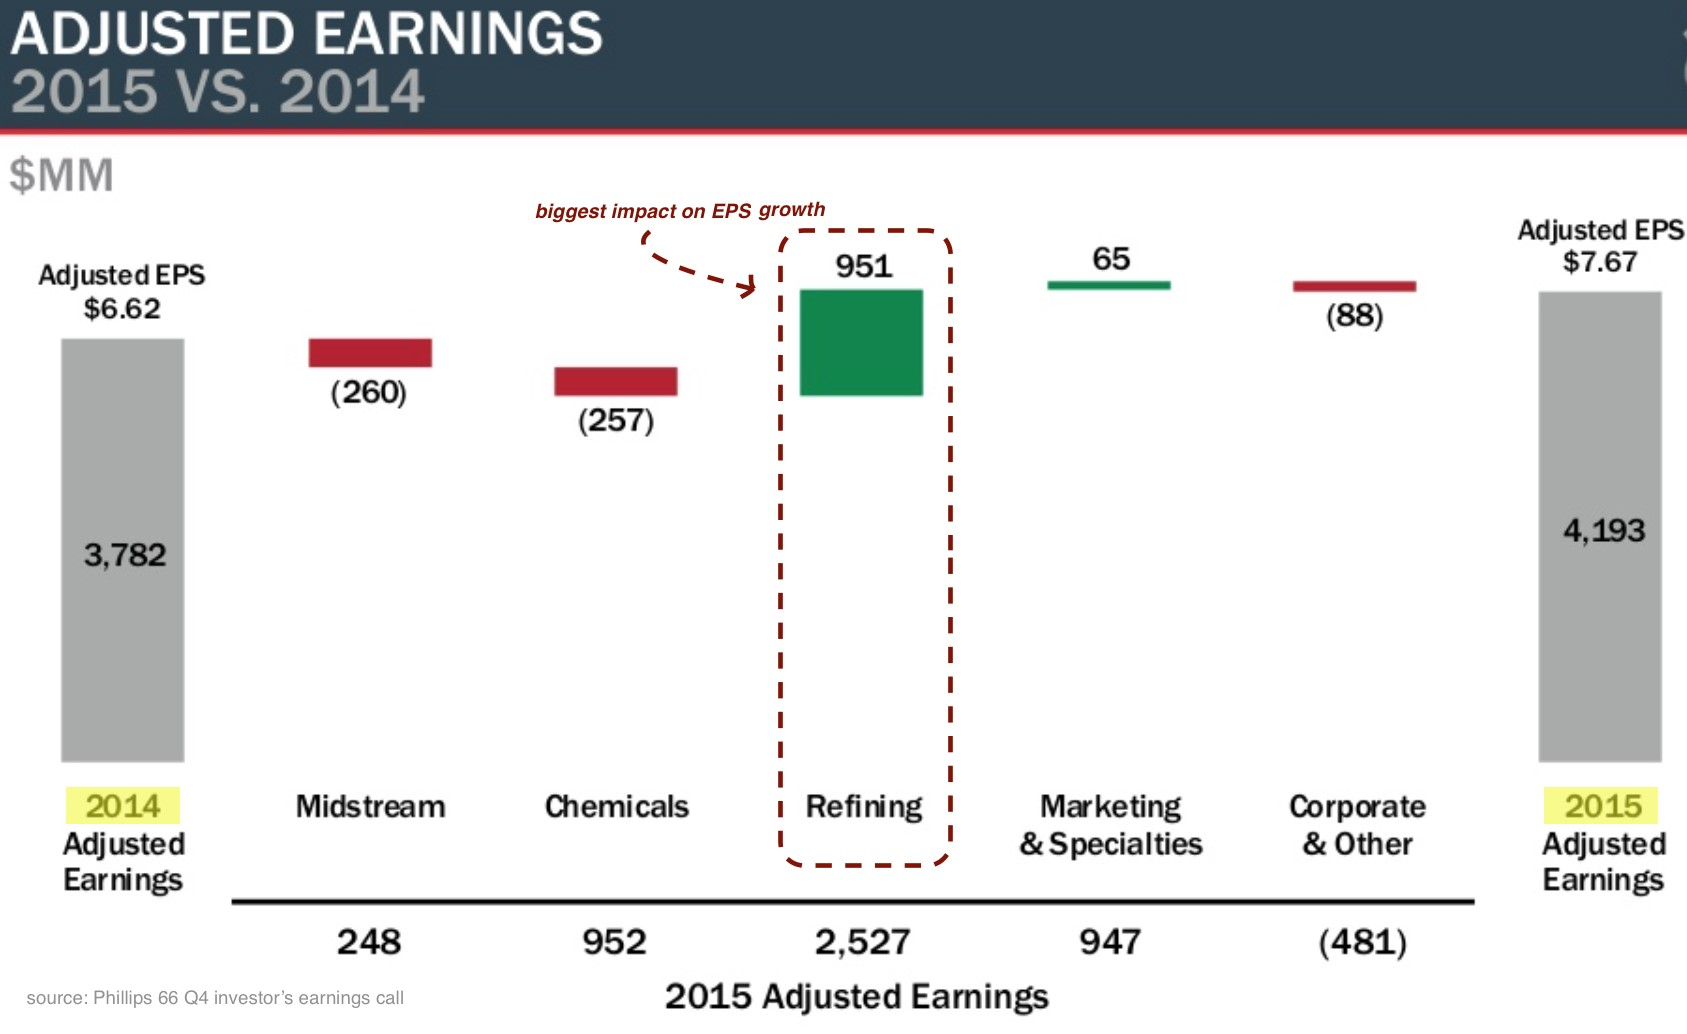 Adjusted Earnings 2015 vs. 2014